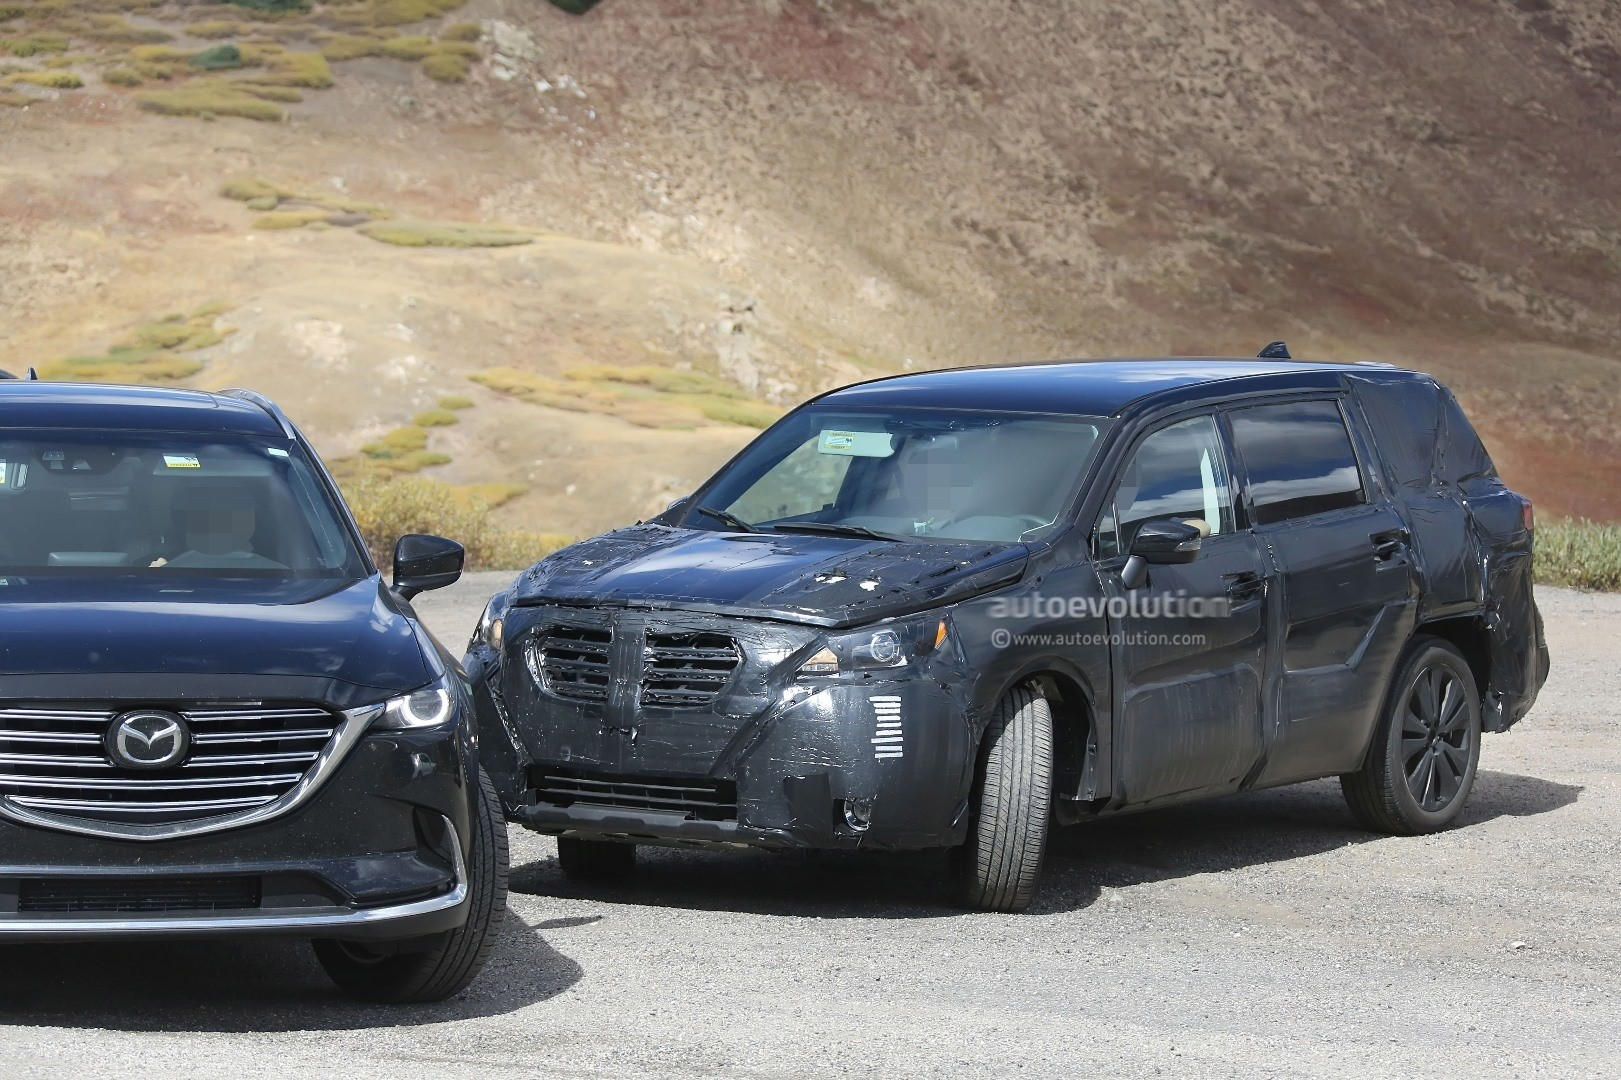 2019 Subaru Tribeca Heir Spied Benchmarking Against Mazda CX-9, Ford ...